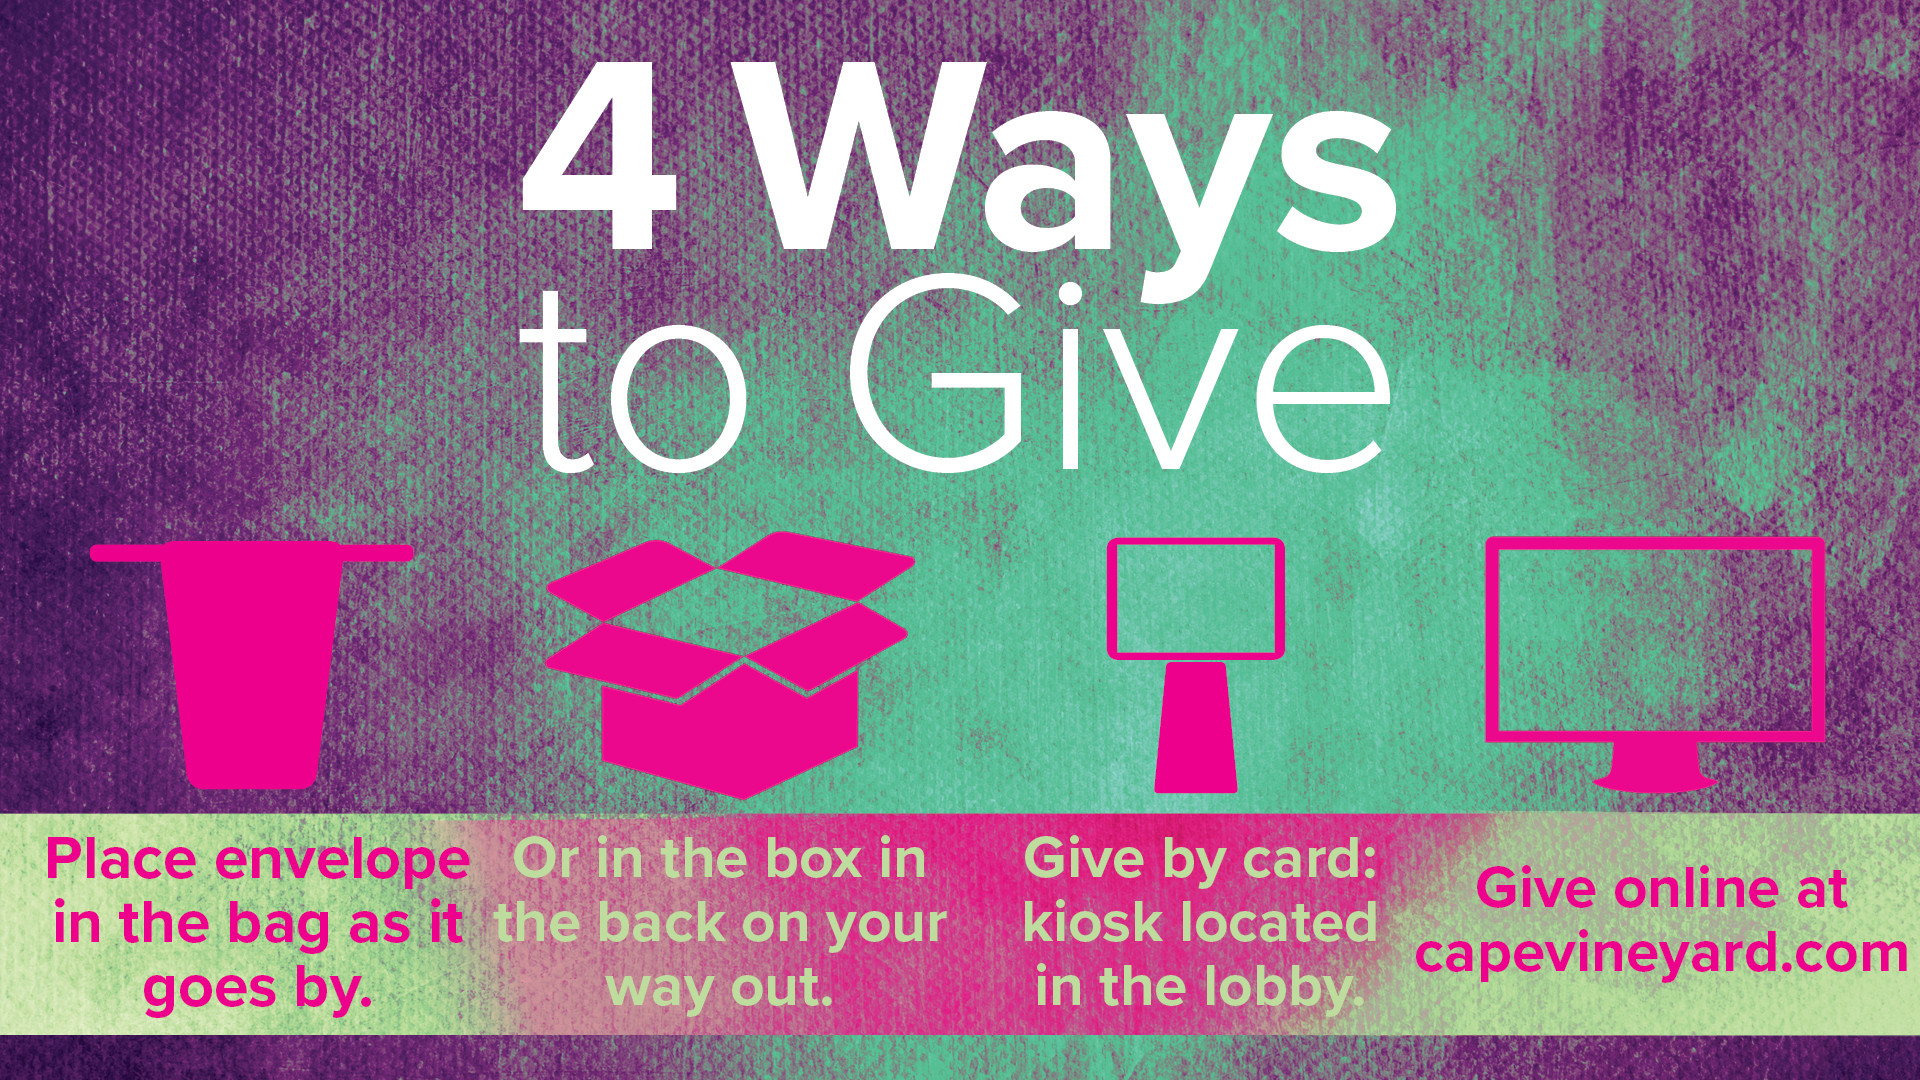 4 Ways to Give.jpg